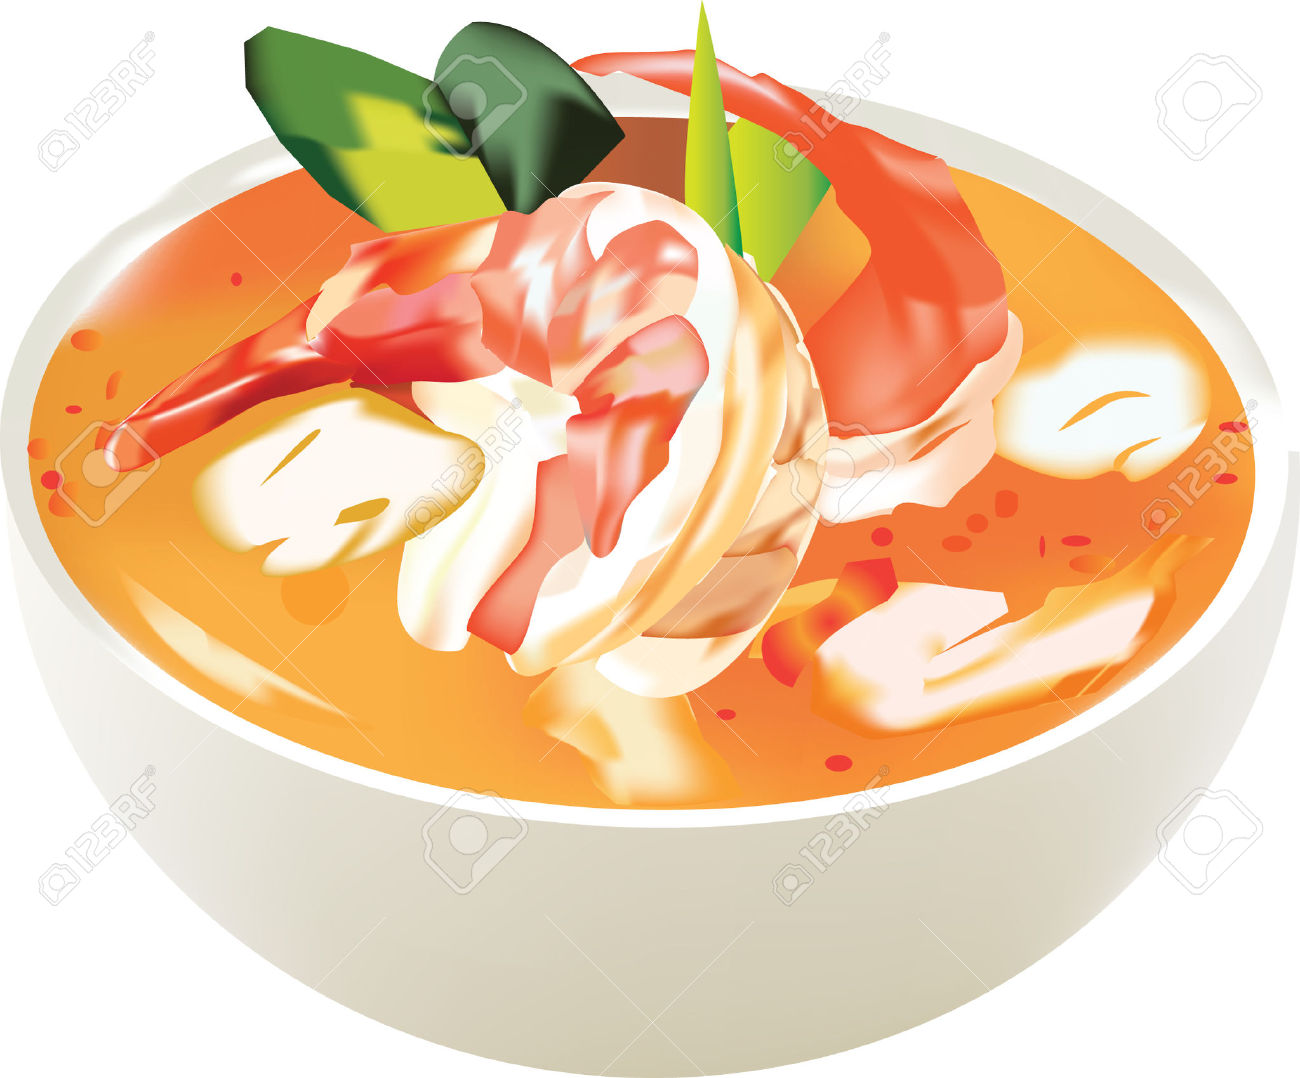 Thai food clipart 10 » Clipart Station.